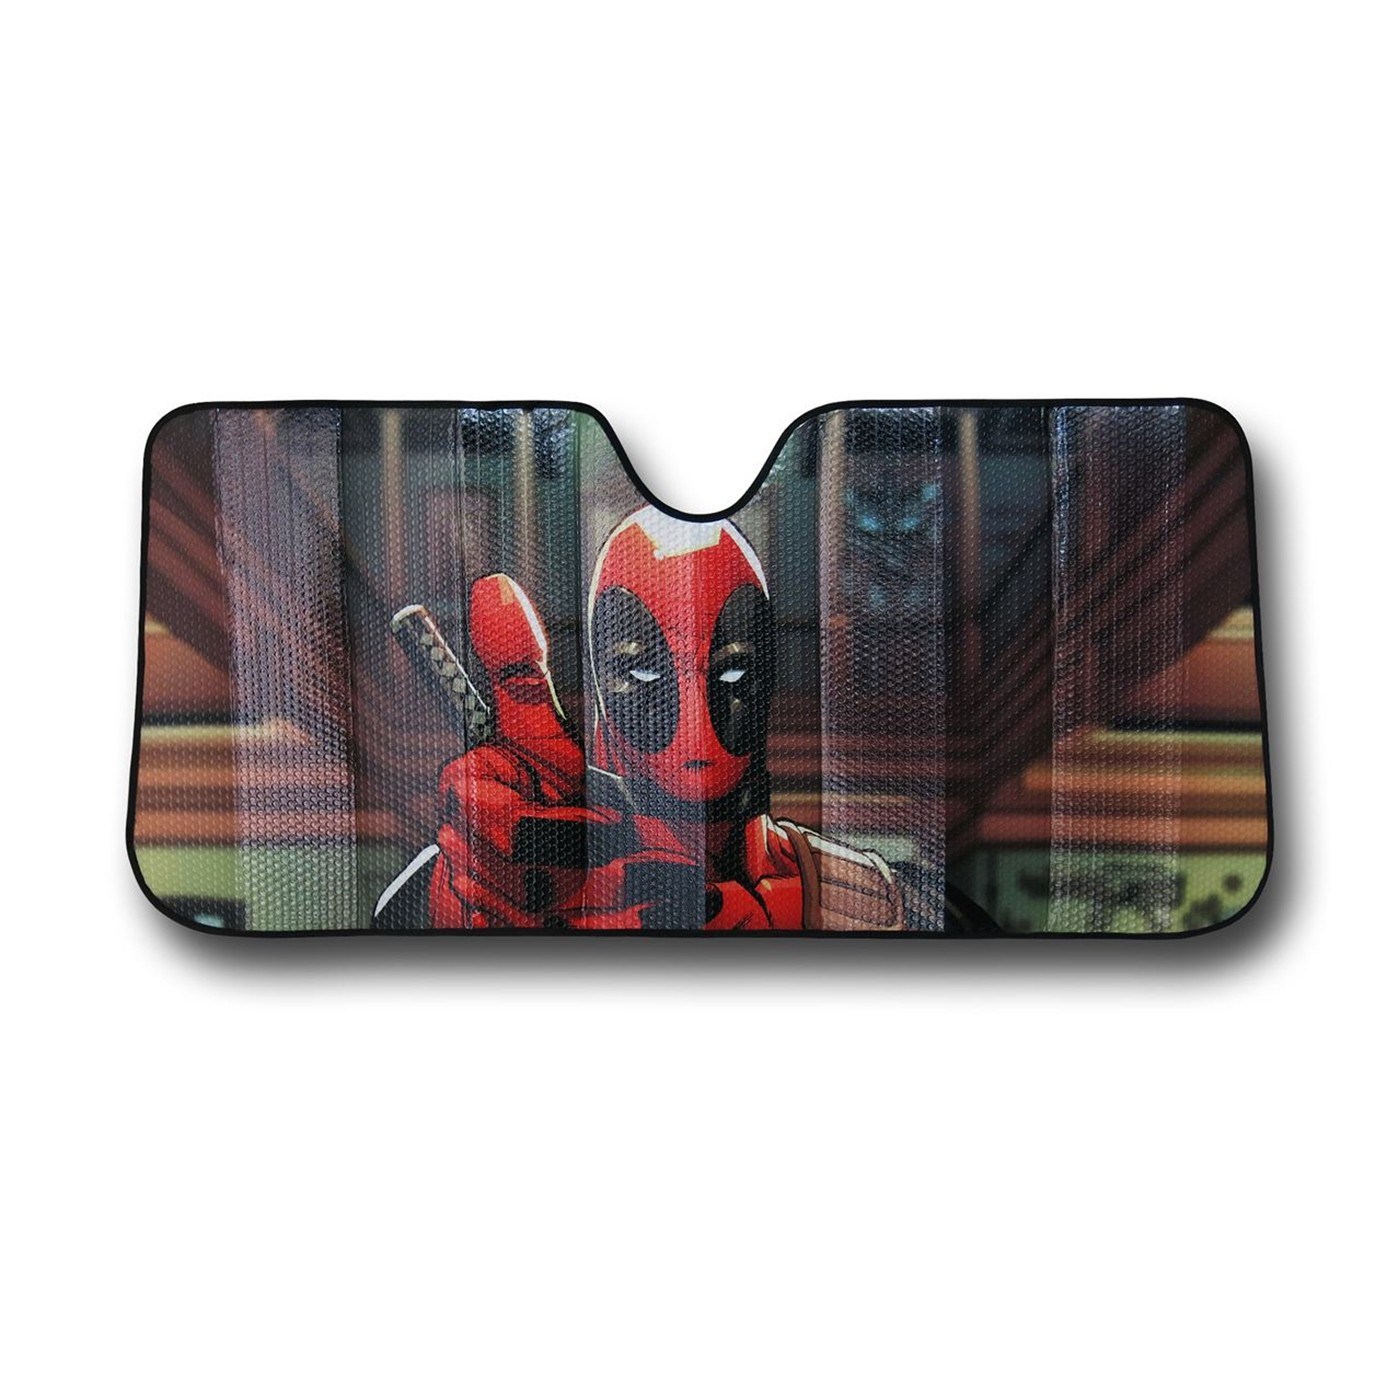 Deadpool Thumbs Up Car Sunshade